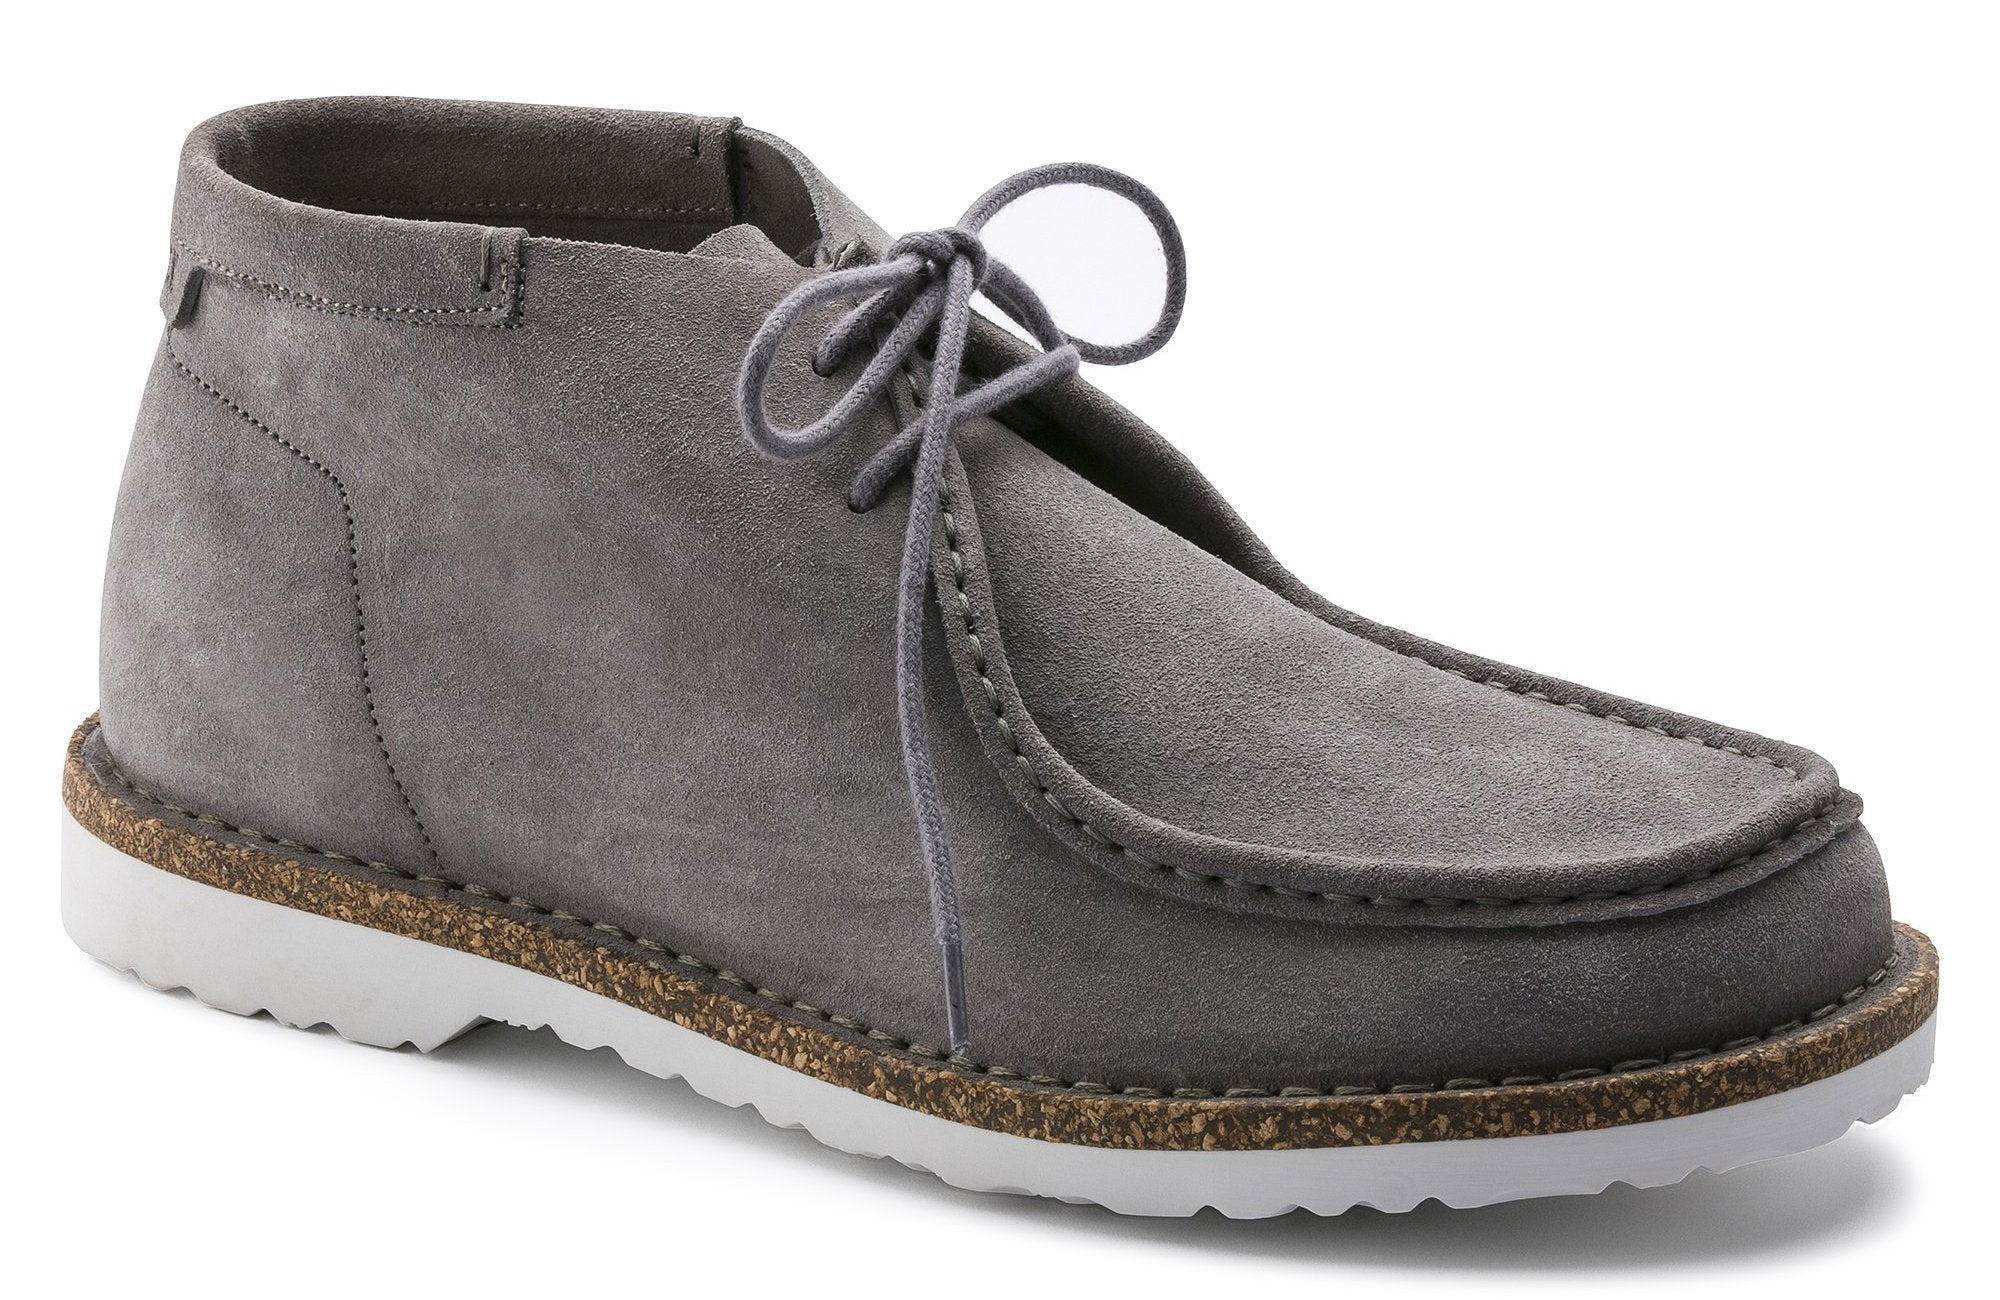 Delano High Men - Grey Suede